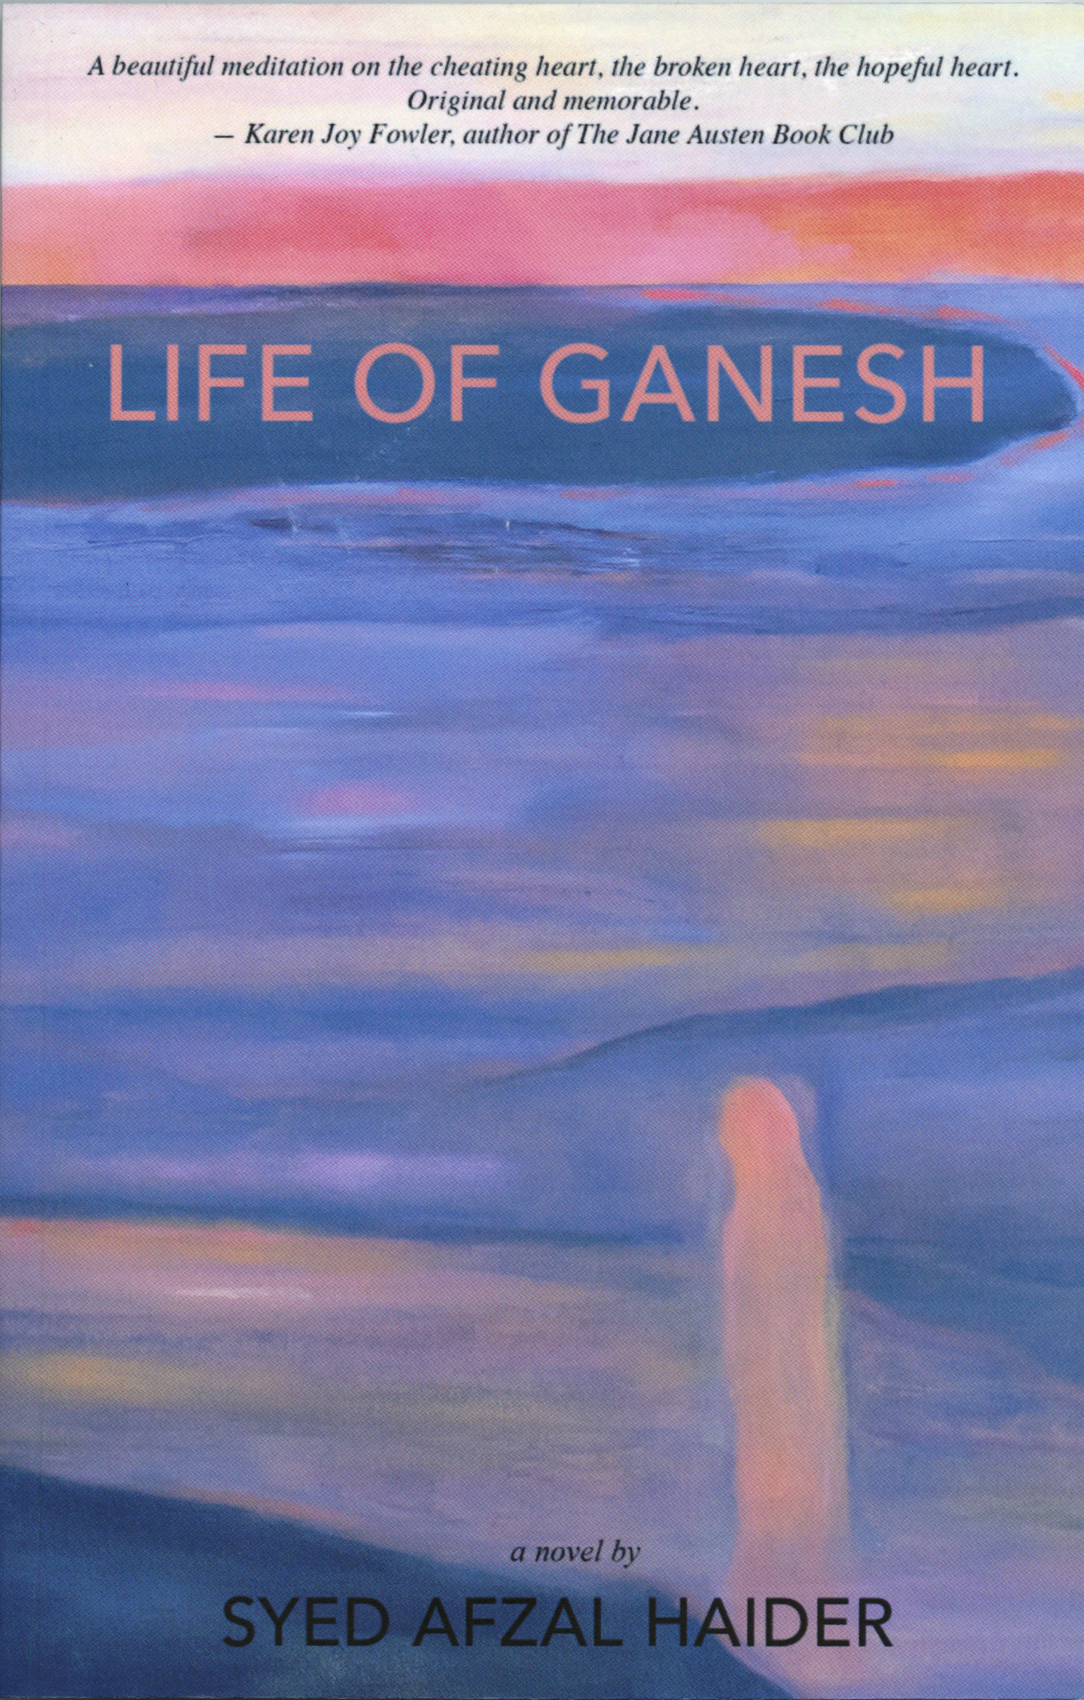 Life of Ganesh